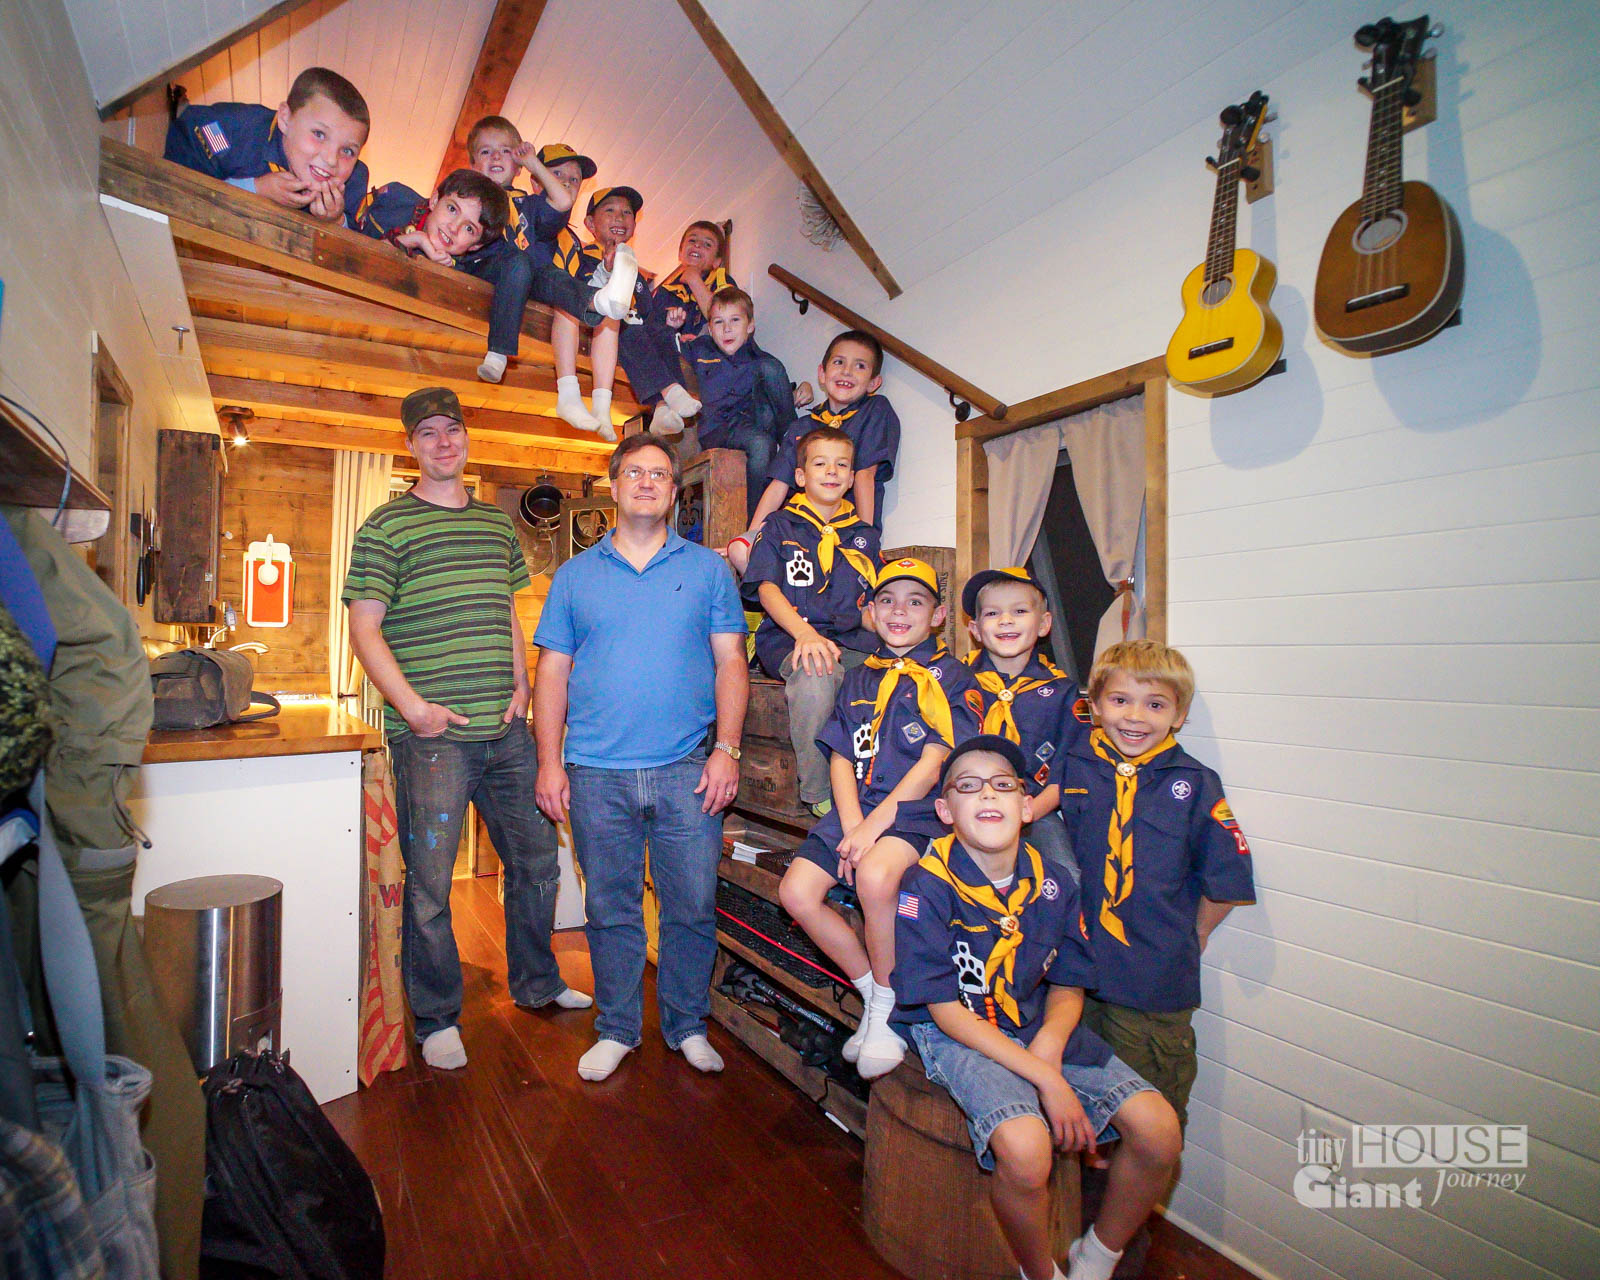 Thgj tiny house scouts tiny house giant journey - The scouts tiny house ...